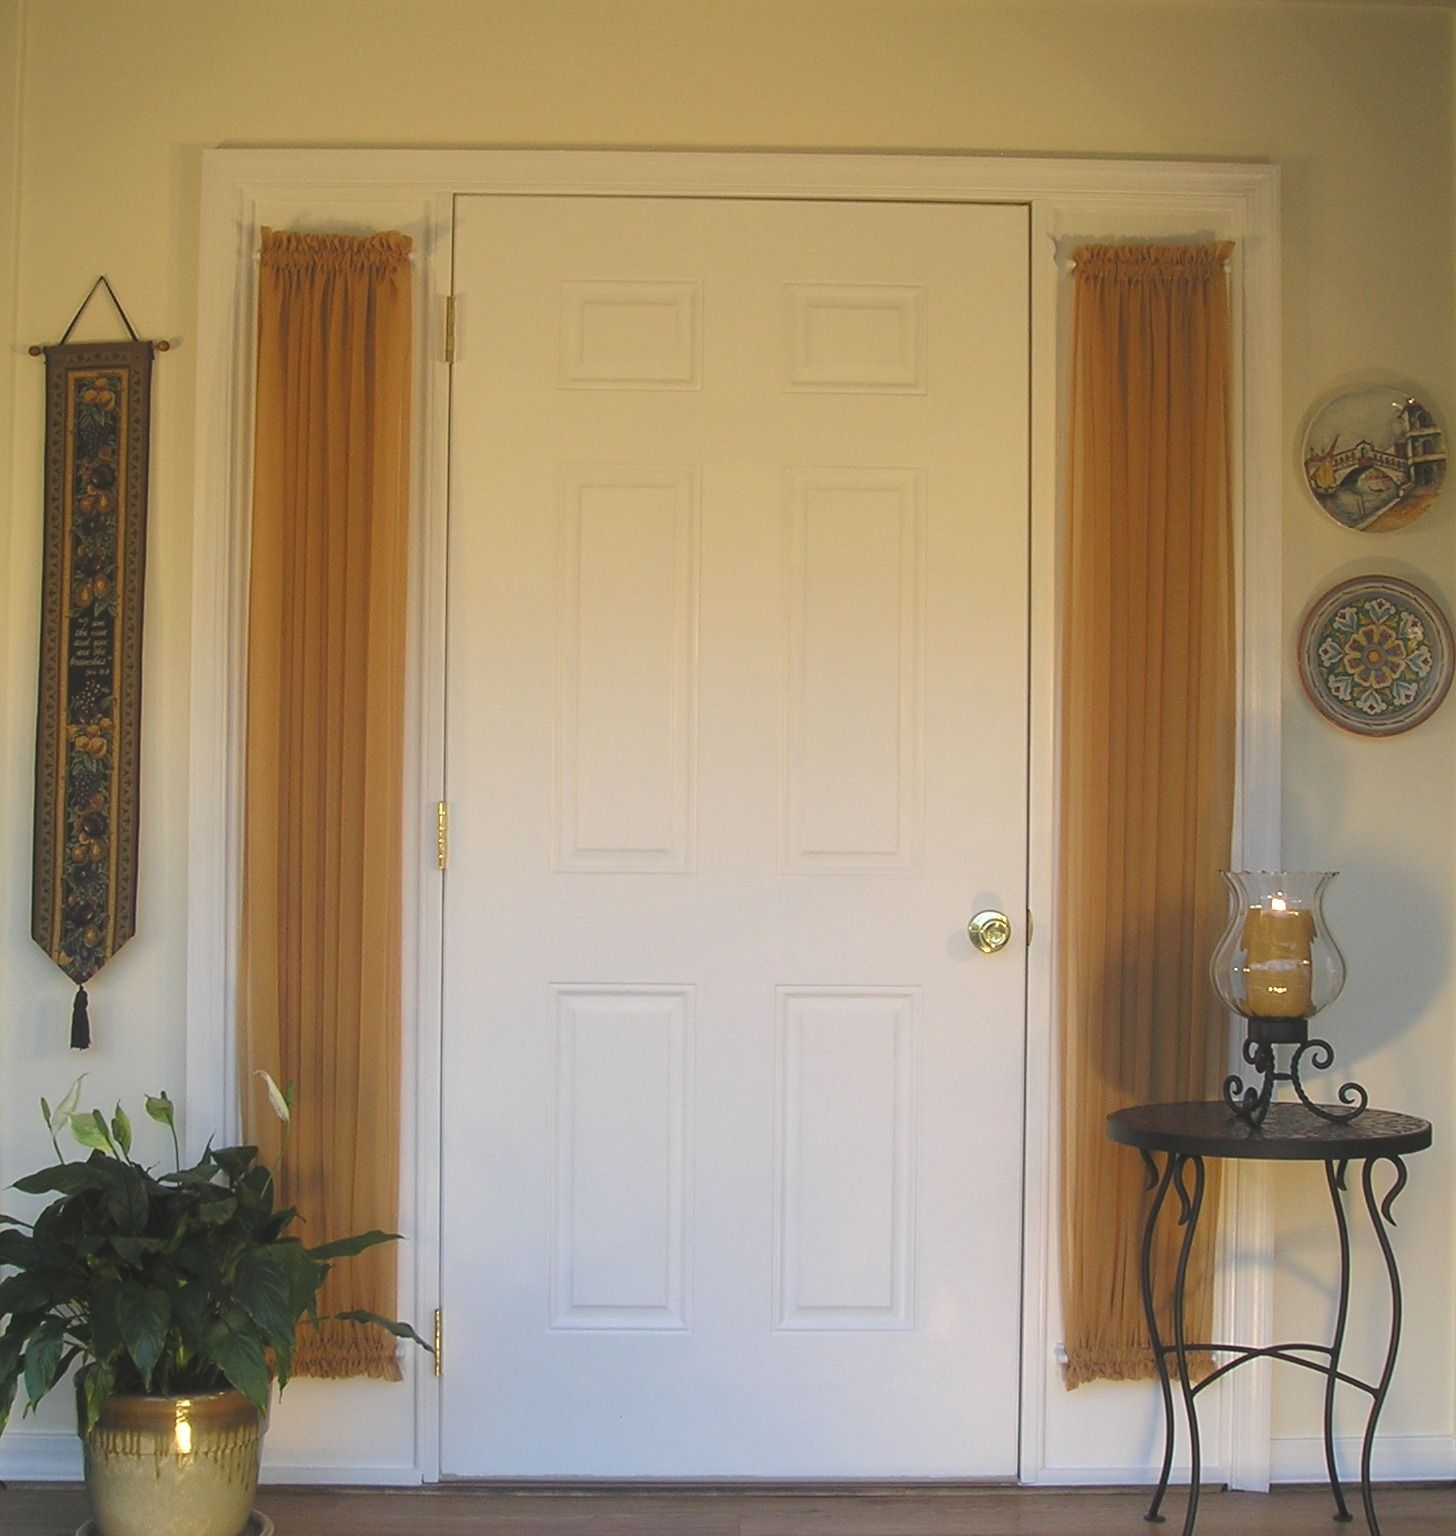 Exceptionnel Door Window Curtains Small   Did You Realize That The Ideal Window Drapes  Can Change The Mood Of A Dark Area, Accent Your Perspective Both Inside And  Out A